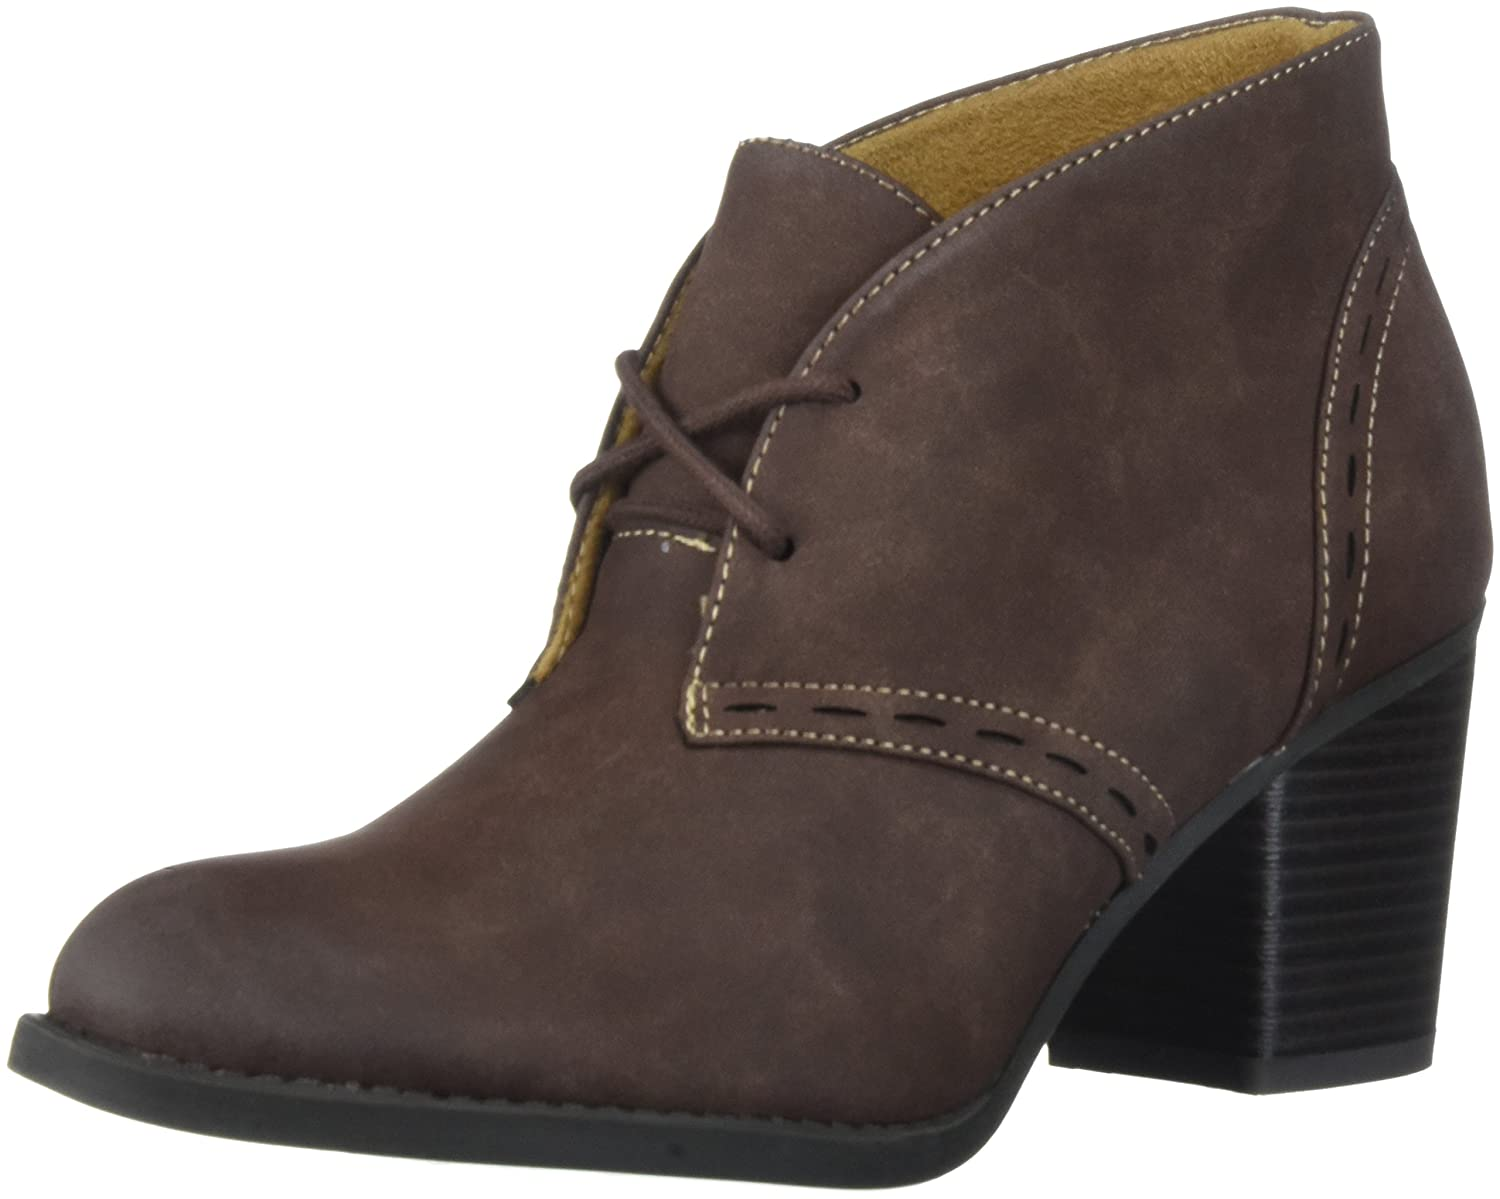 NATURAL SOUL Women's Tracy Ankle Boot B074ST5SXB 8.5 M US|Brown